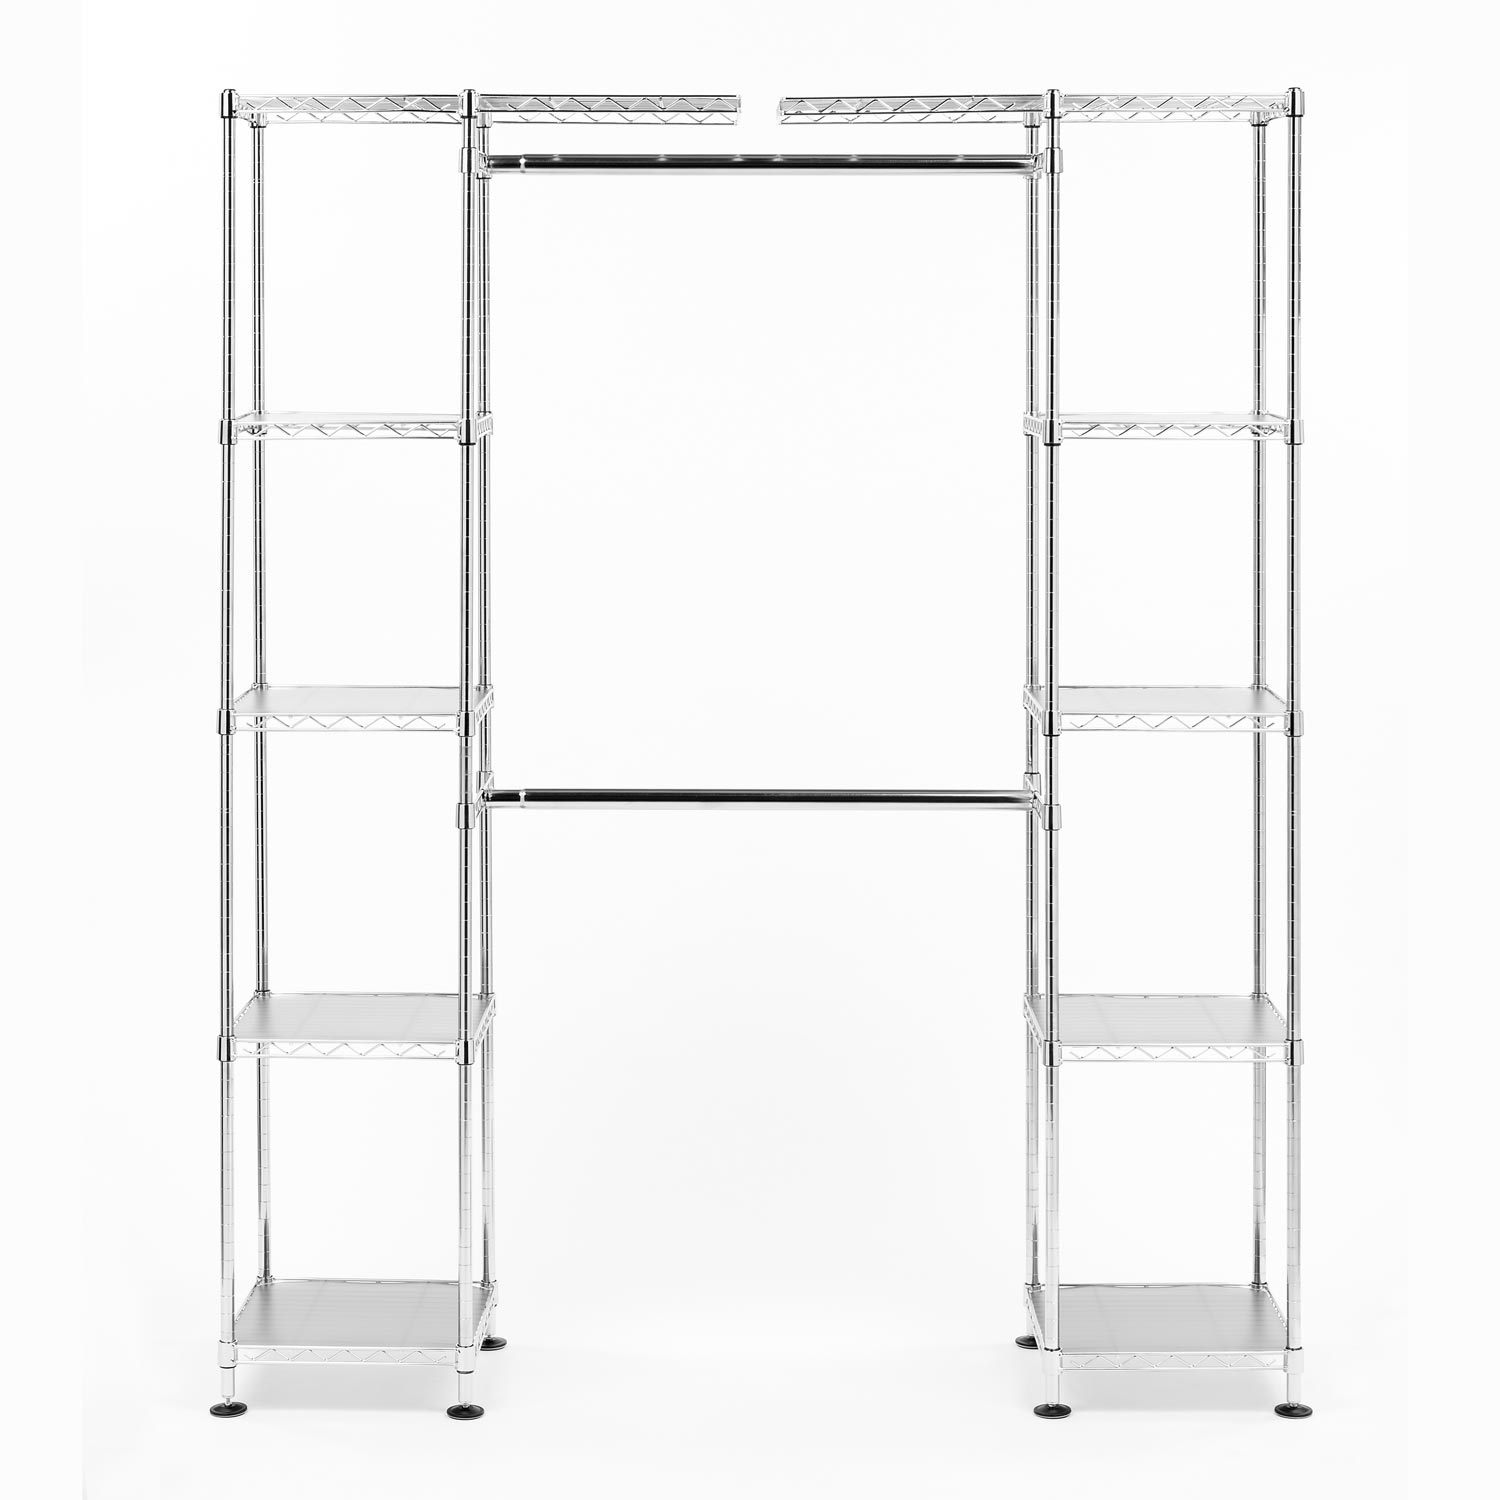 expandable images home seville classics the exquisite closet organizer pic shipping marvelous free trinity ecostorage